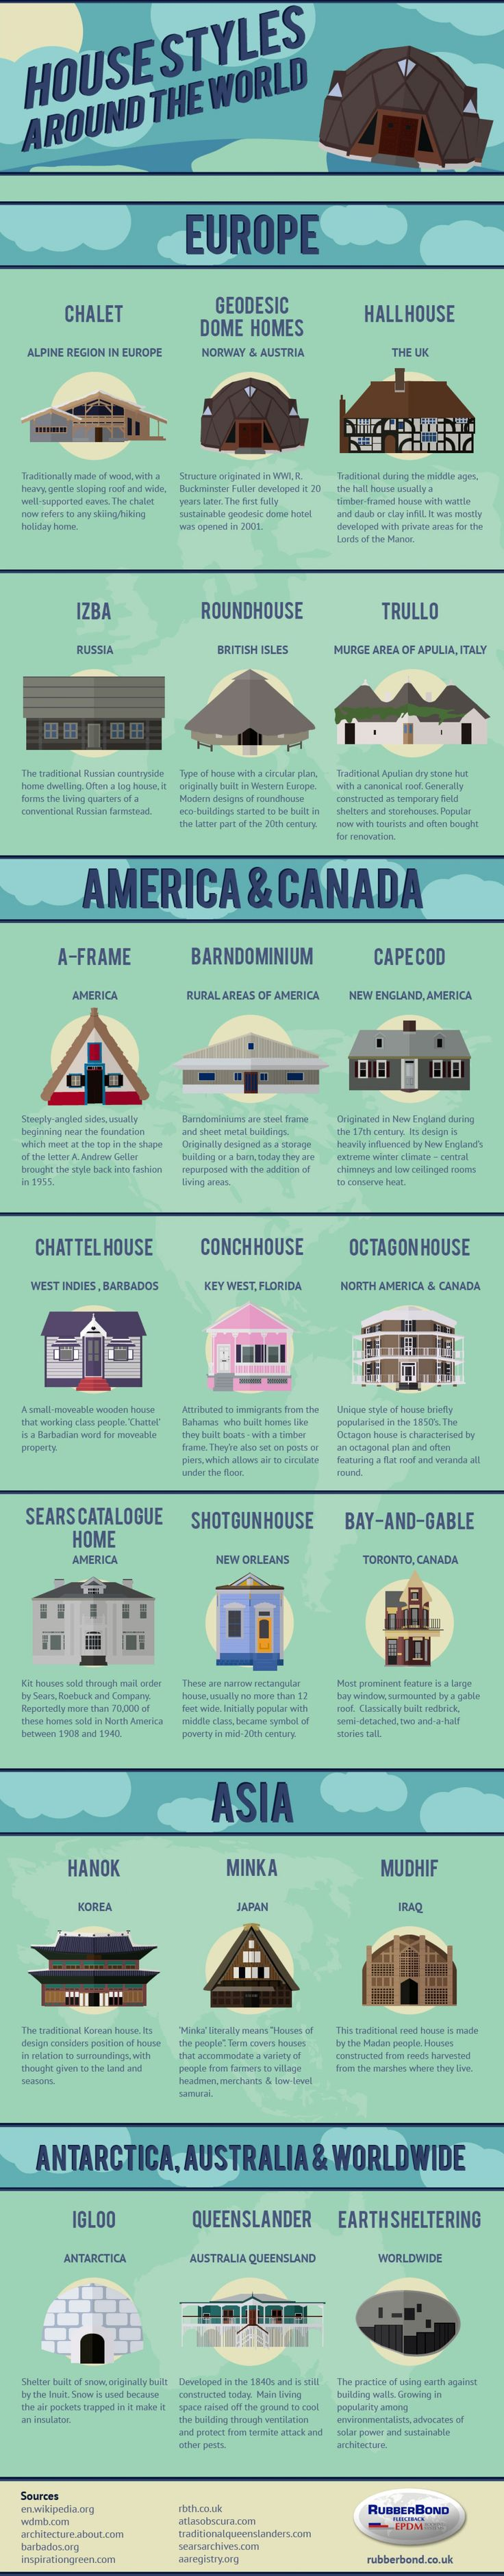 House Styles Around the World #Infographic #infografía